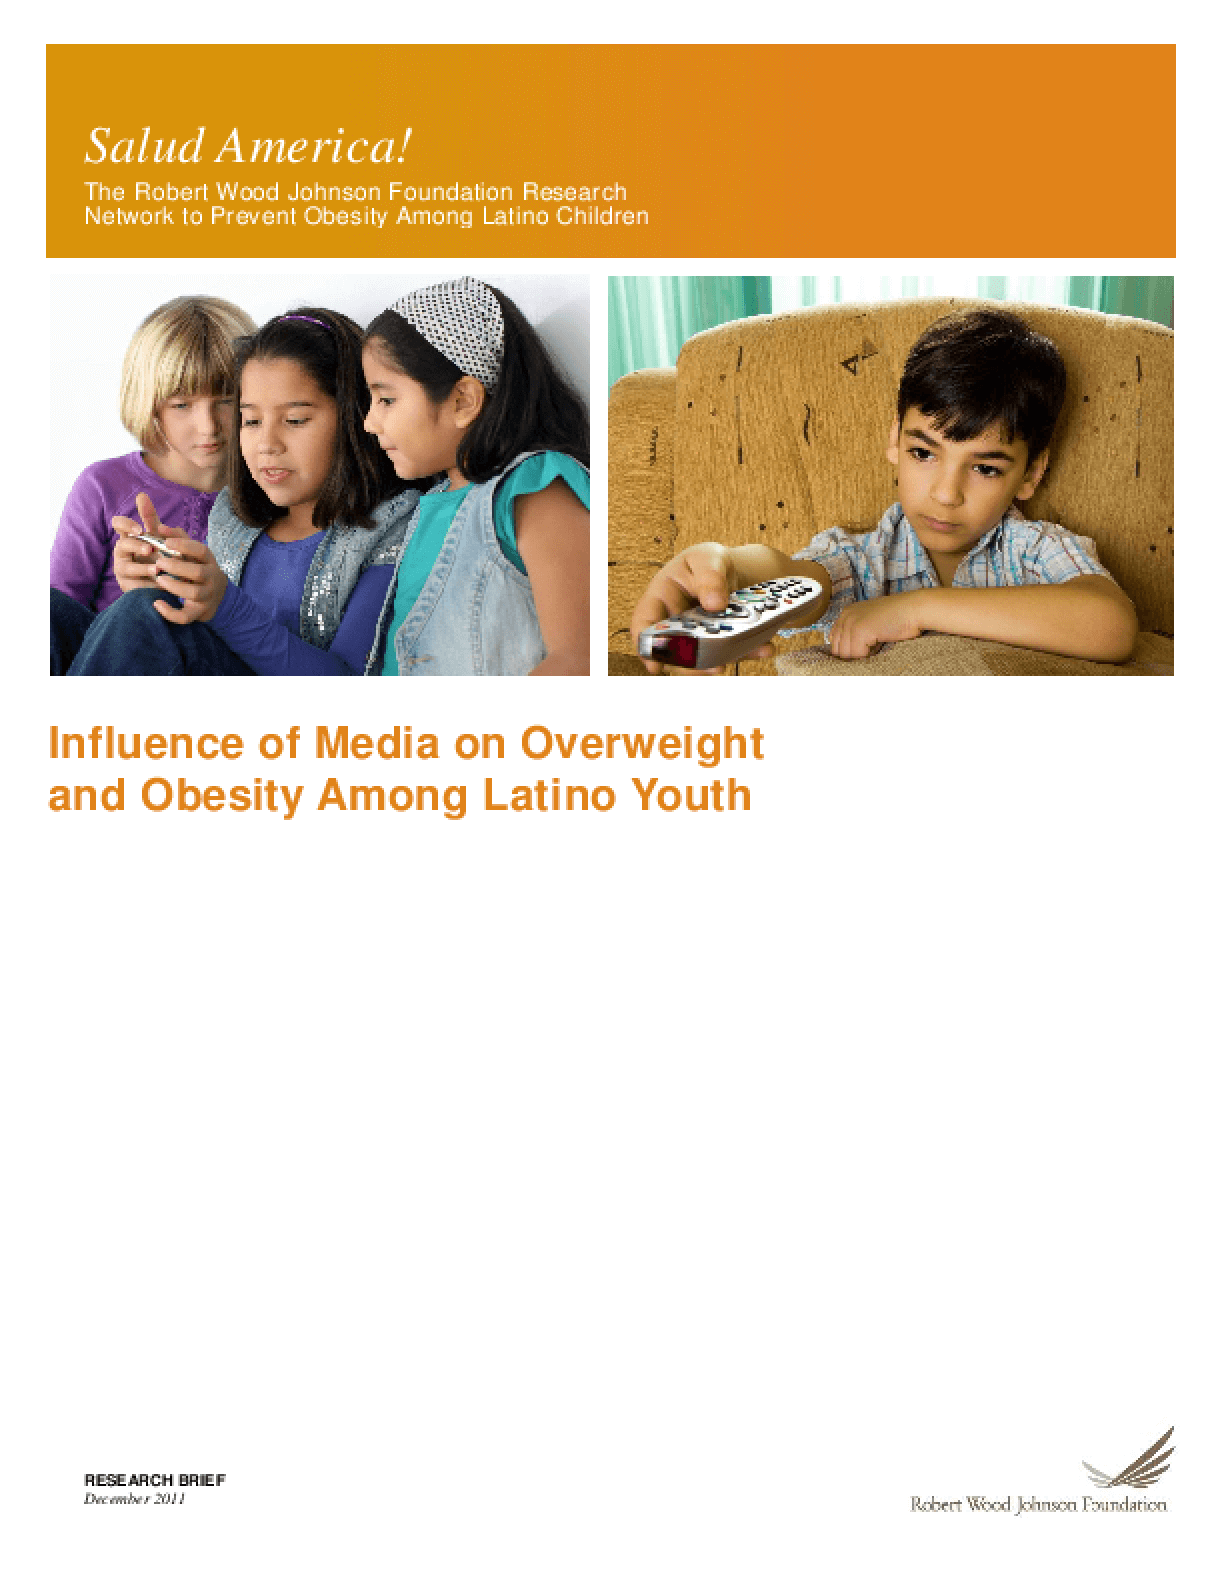 Influence of Media on Overweight and Obesity Among Latino Youth